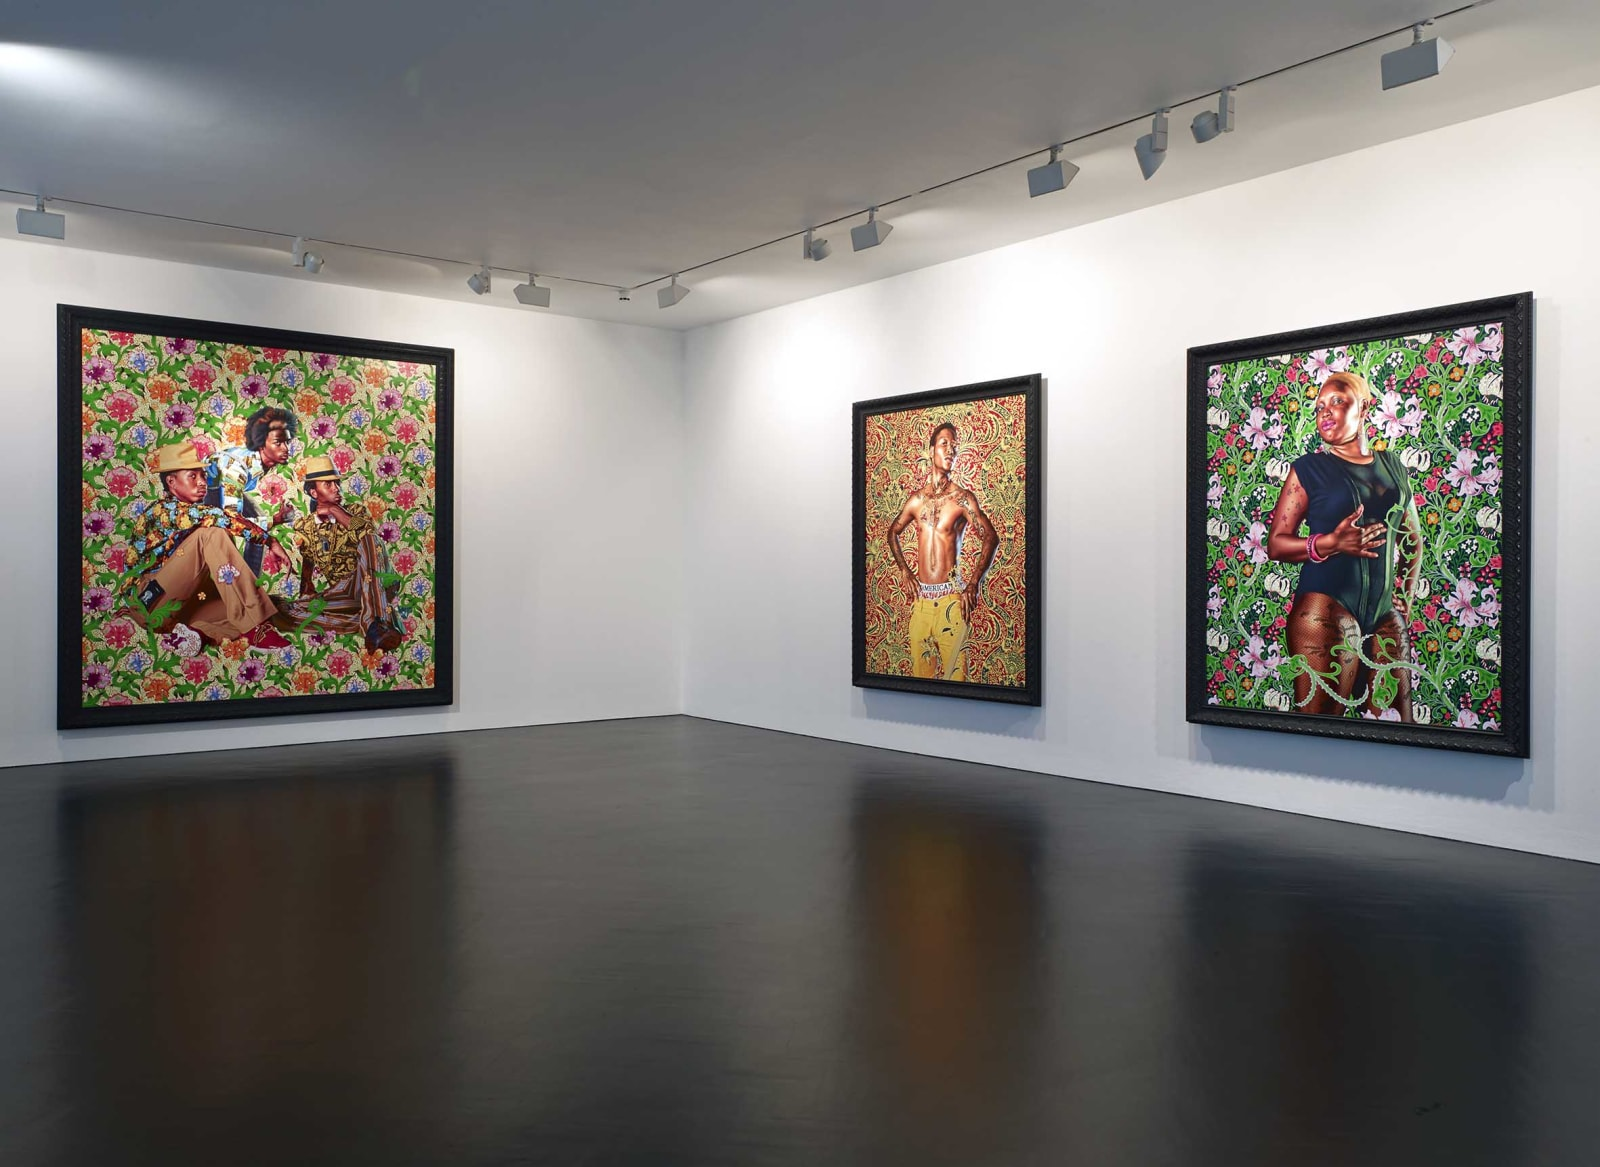 <p>Installation view: 'Kehinde Wiley: The World Stage: Jamaica', Stephen Friedman Gallery, London (2013).</p>